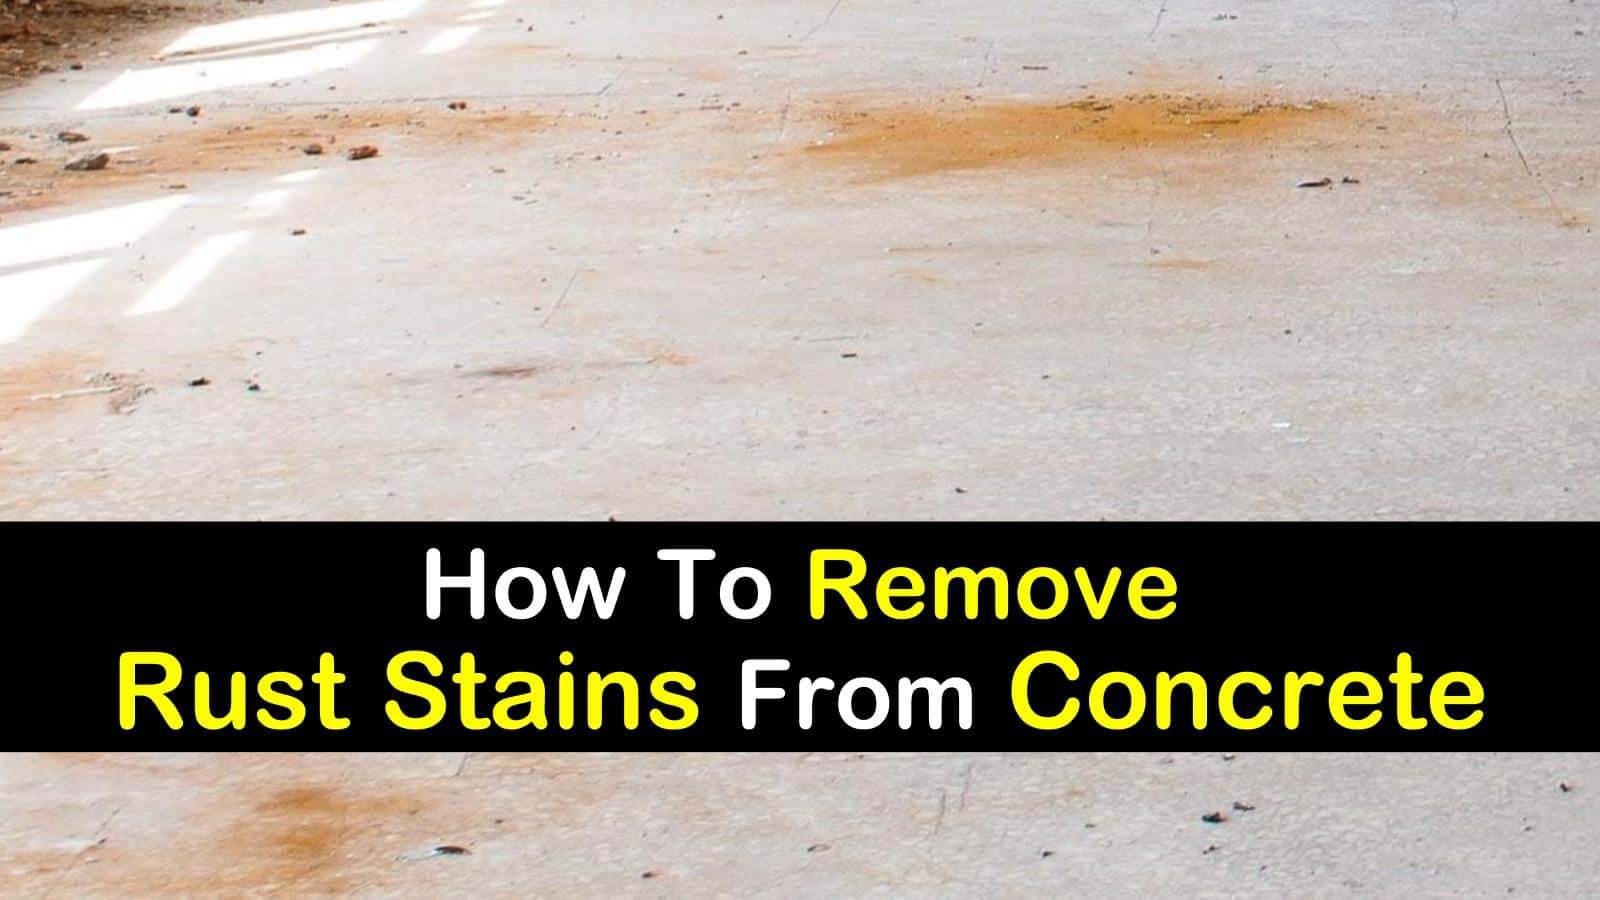 3 Smart Simple Ways To Remove Rust Stains From Concrete